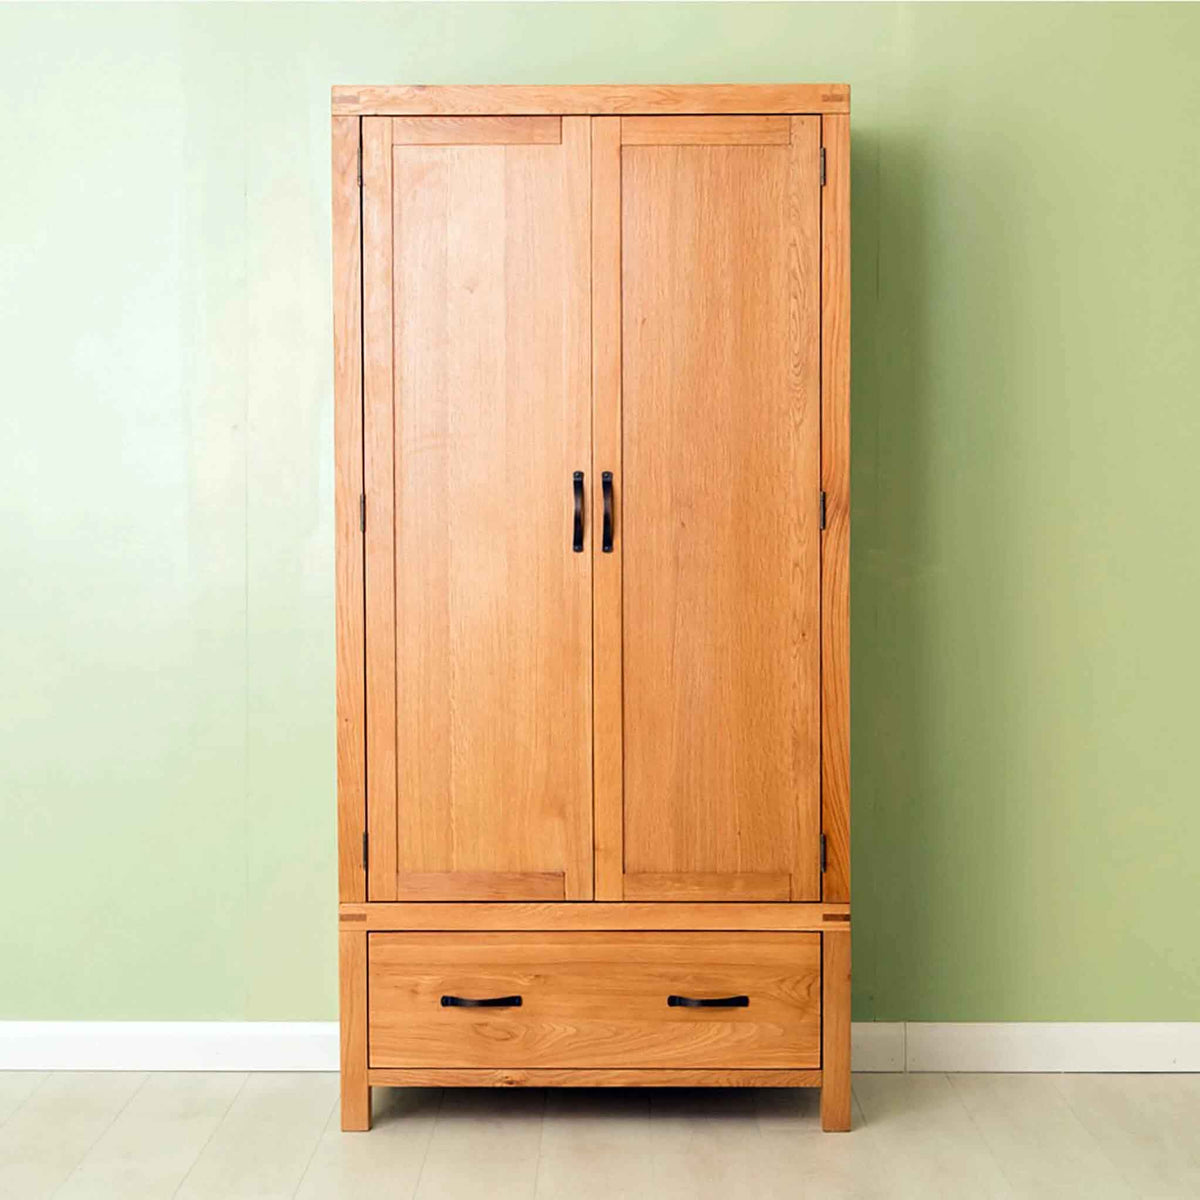 The Abbey Waxed Oak Bedroom Furniture Set 2 Door Double Wardrobe